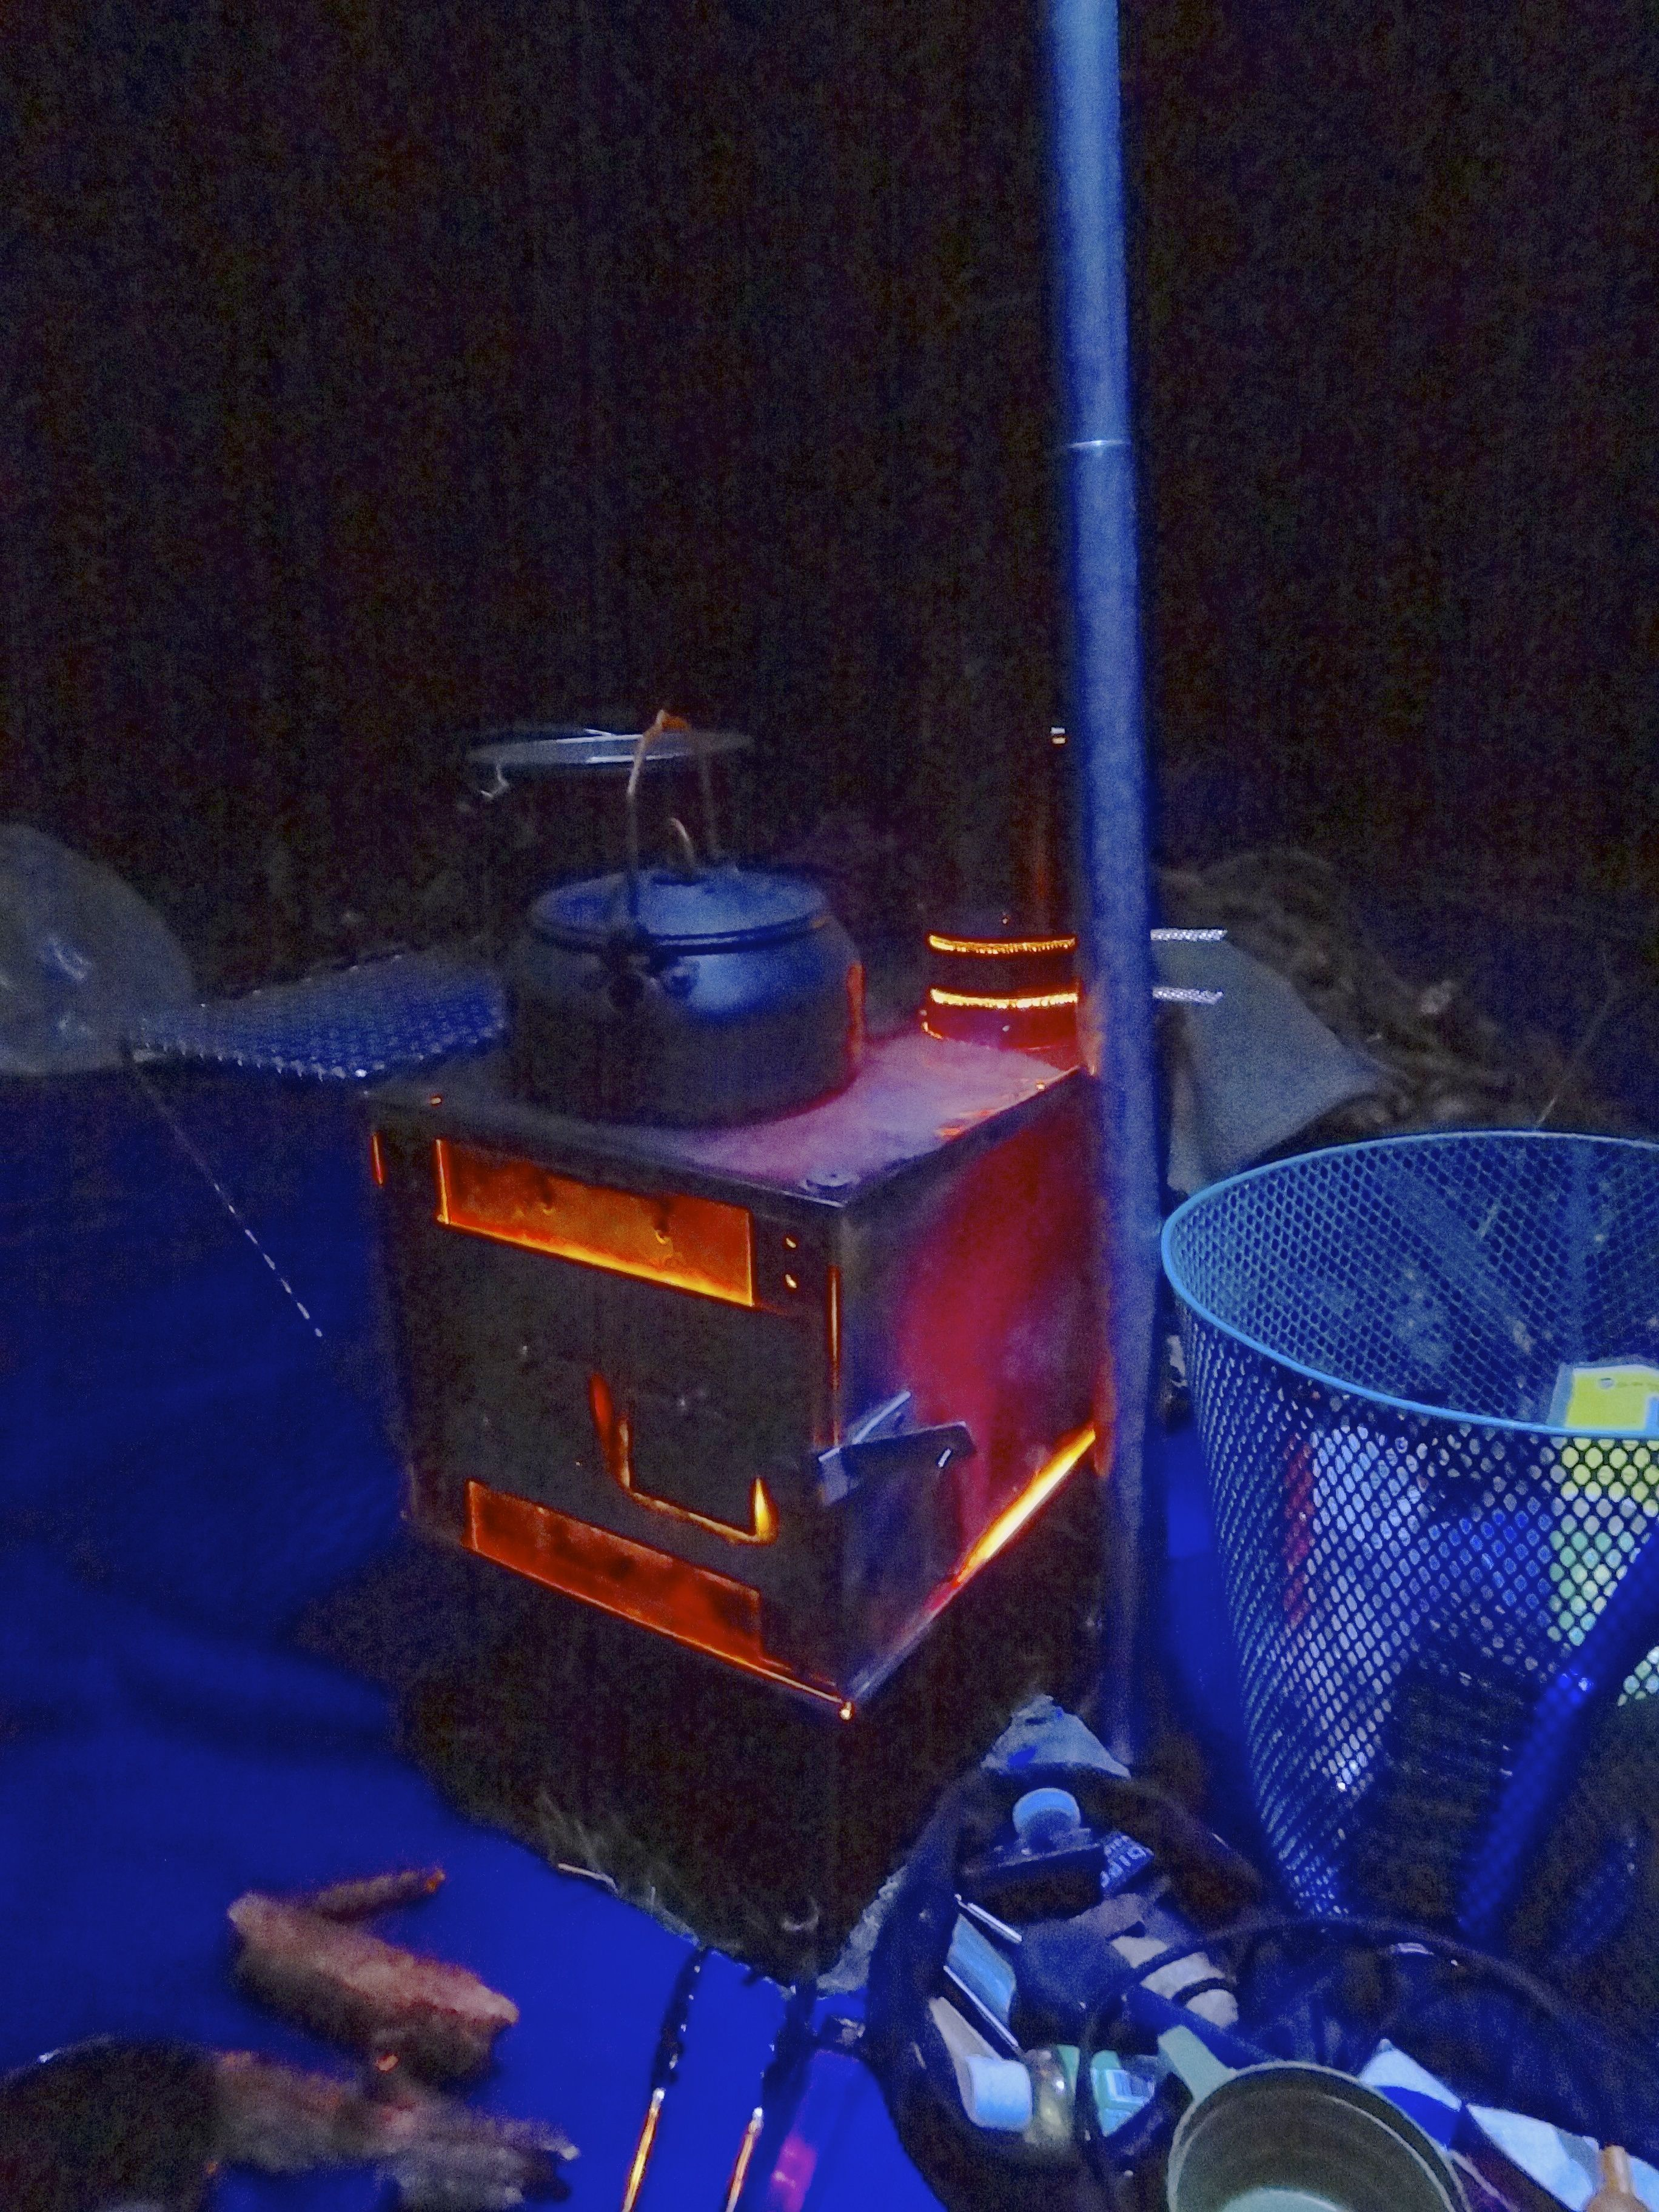 My Tipi's Titanium wood stove is a light show at night